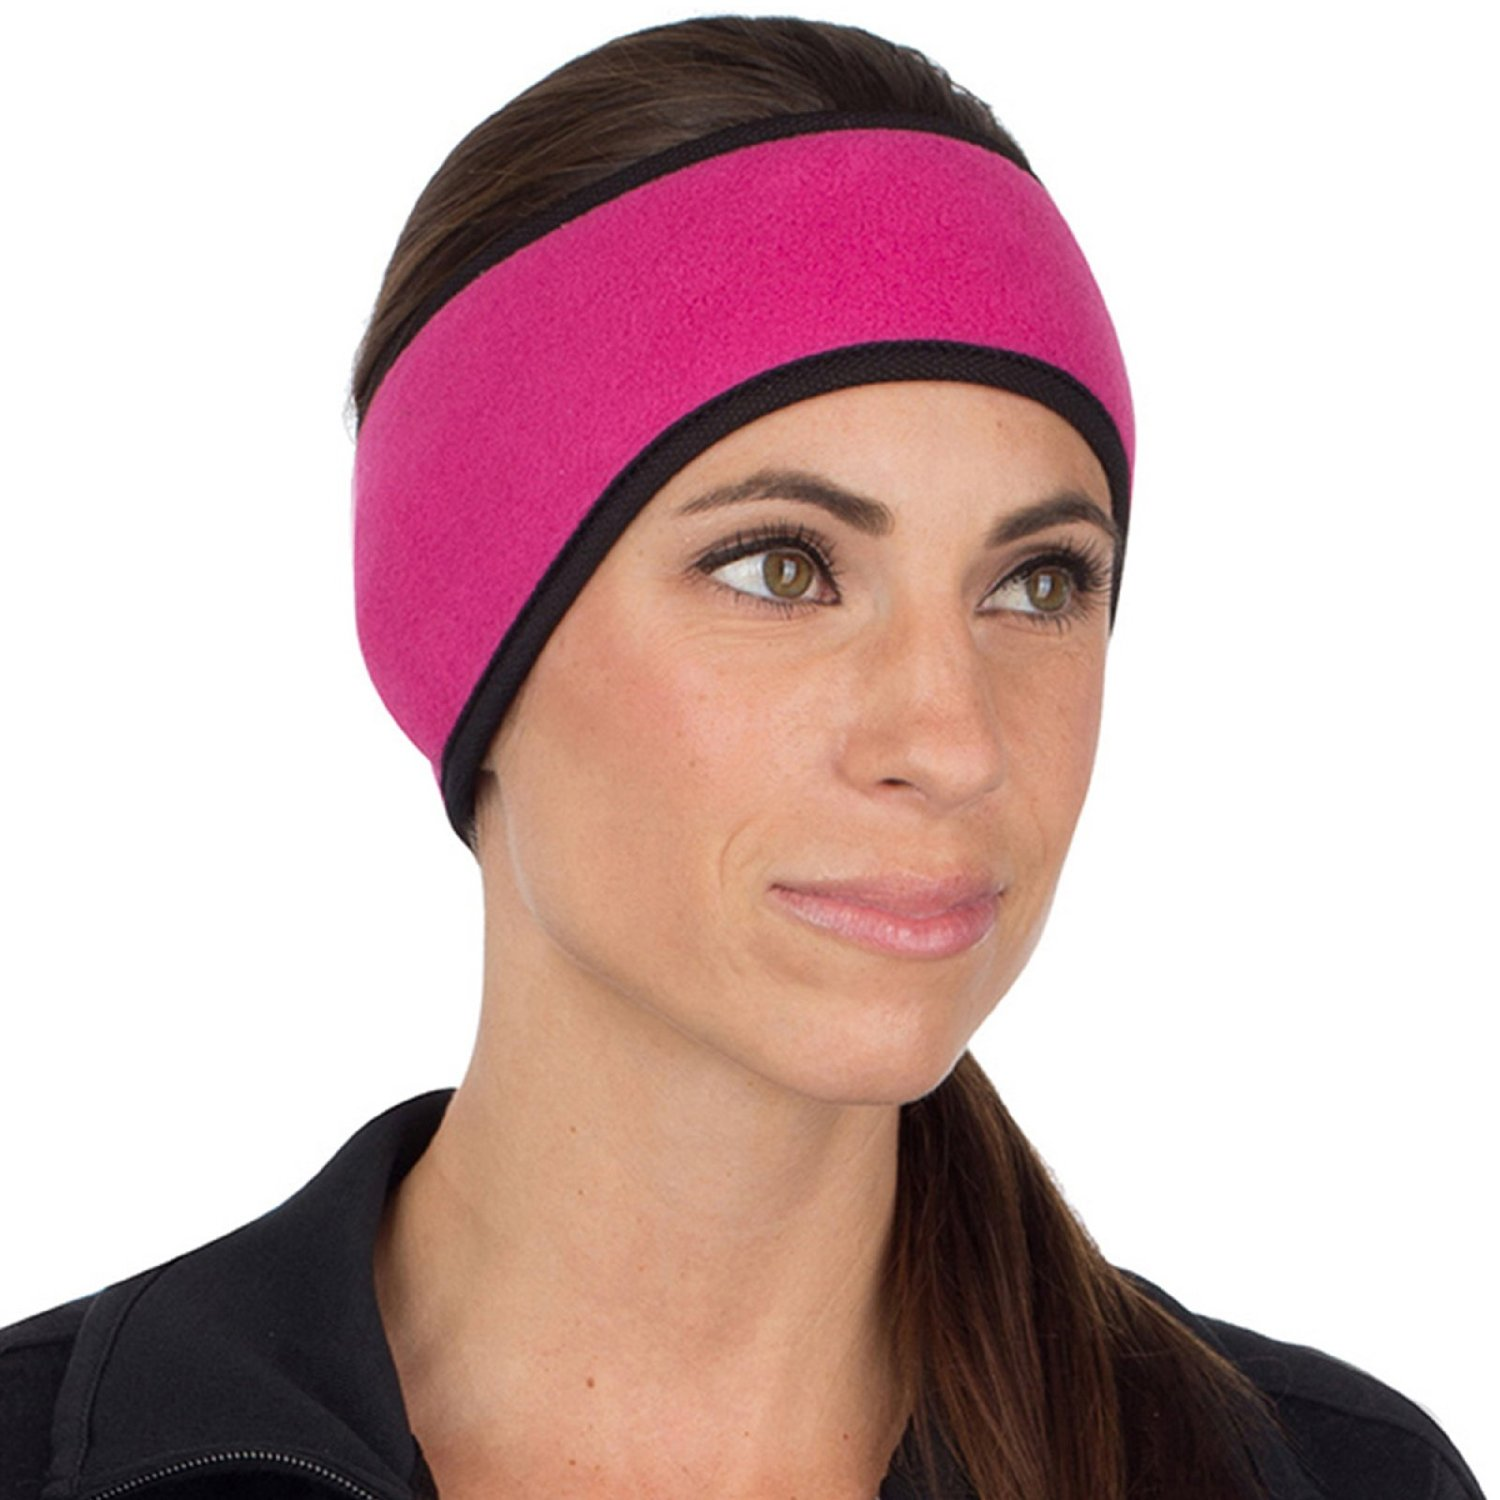 TrailHeads Women's Ponytail Headband - 13 colors